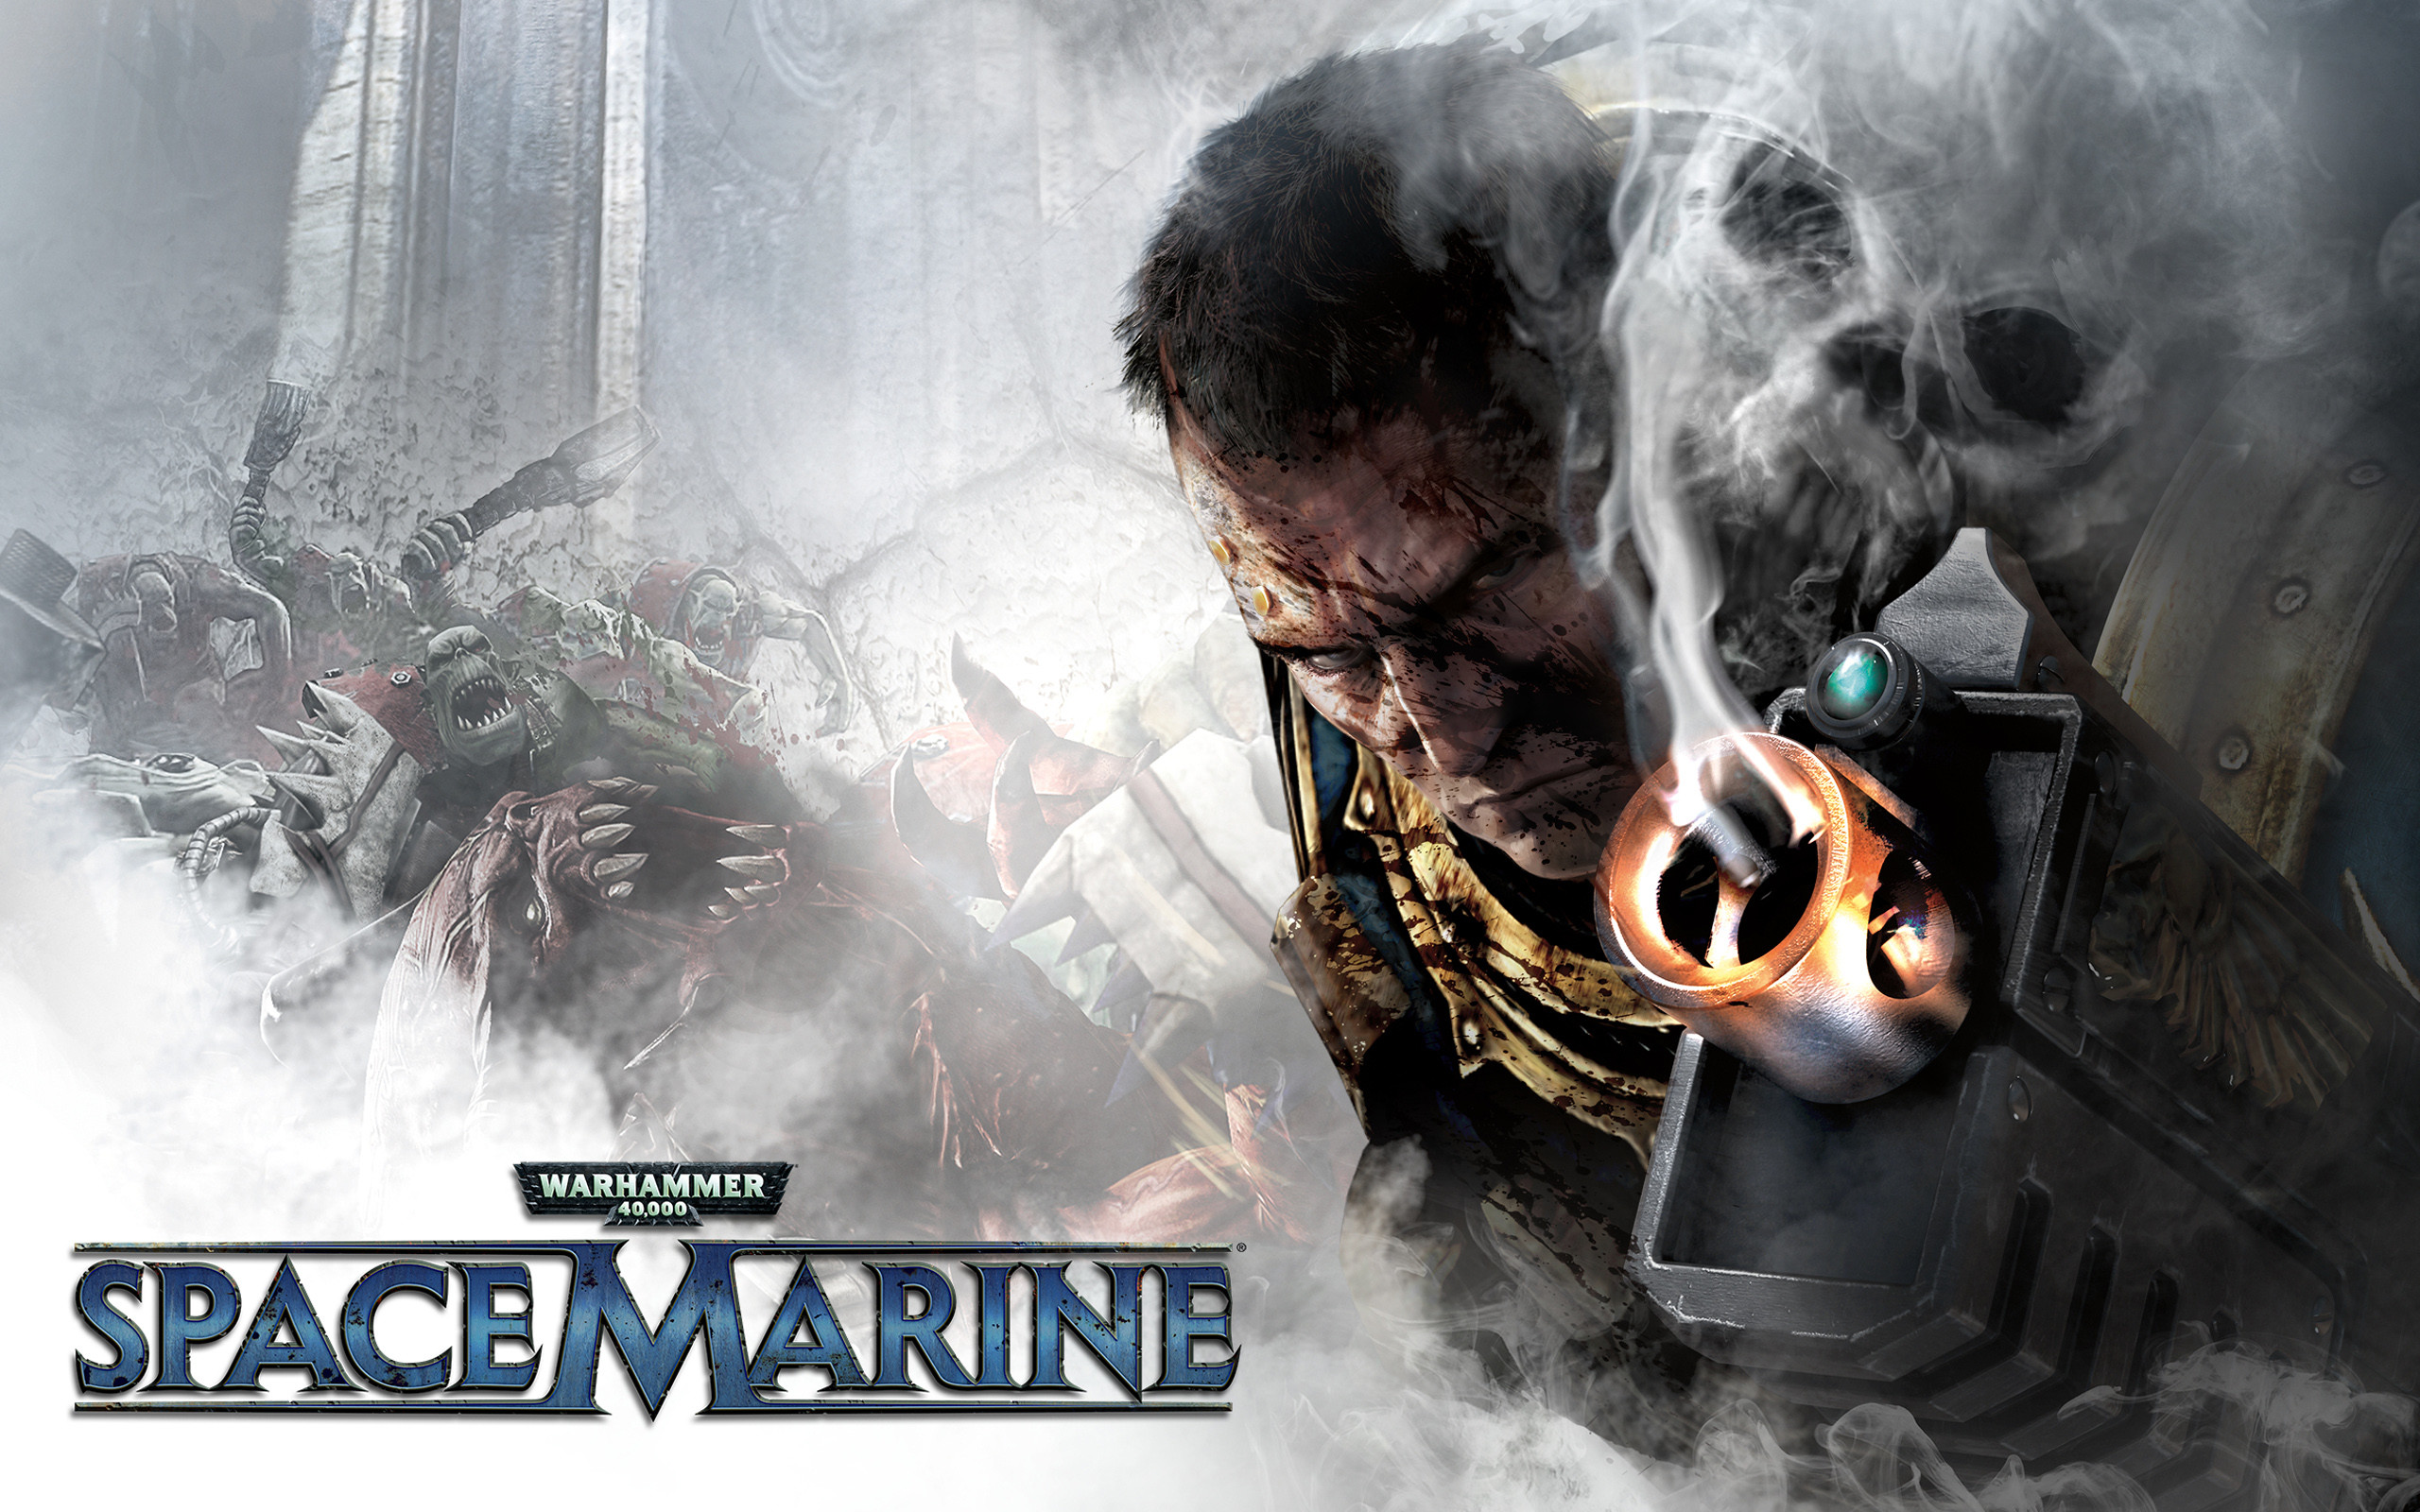 2560x1600 Warhammer Space Marine Game Wallpapers | HD Wallpapers